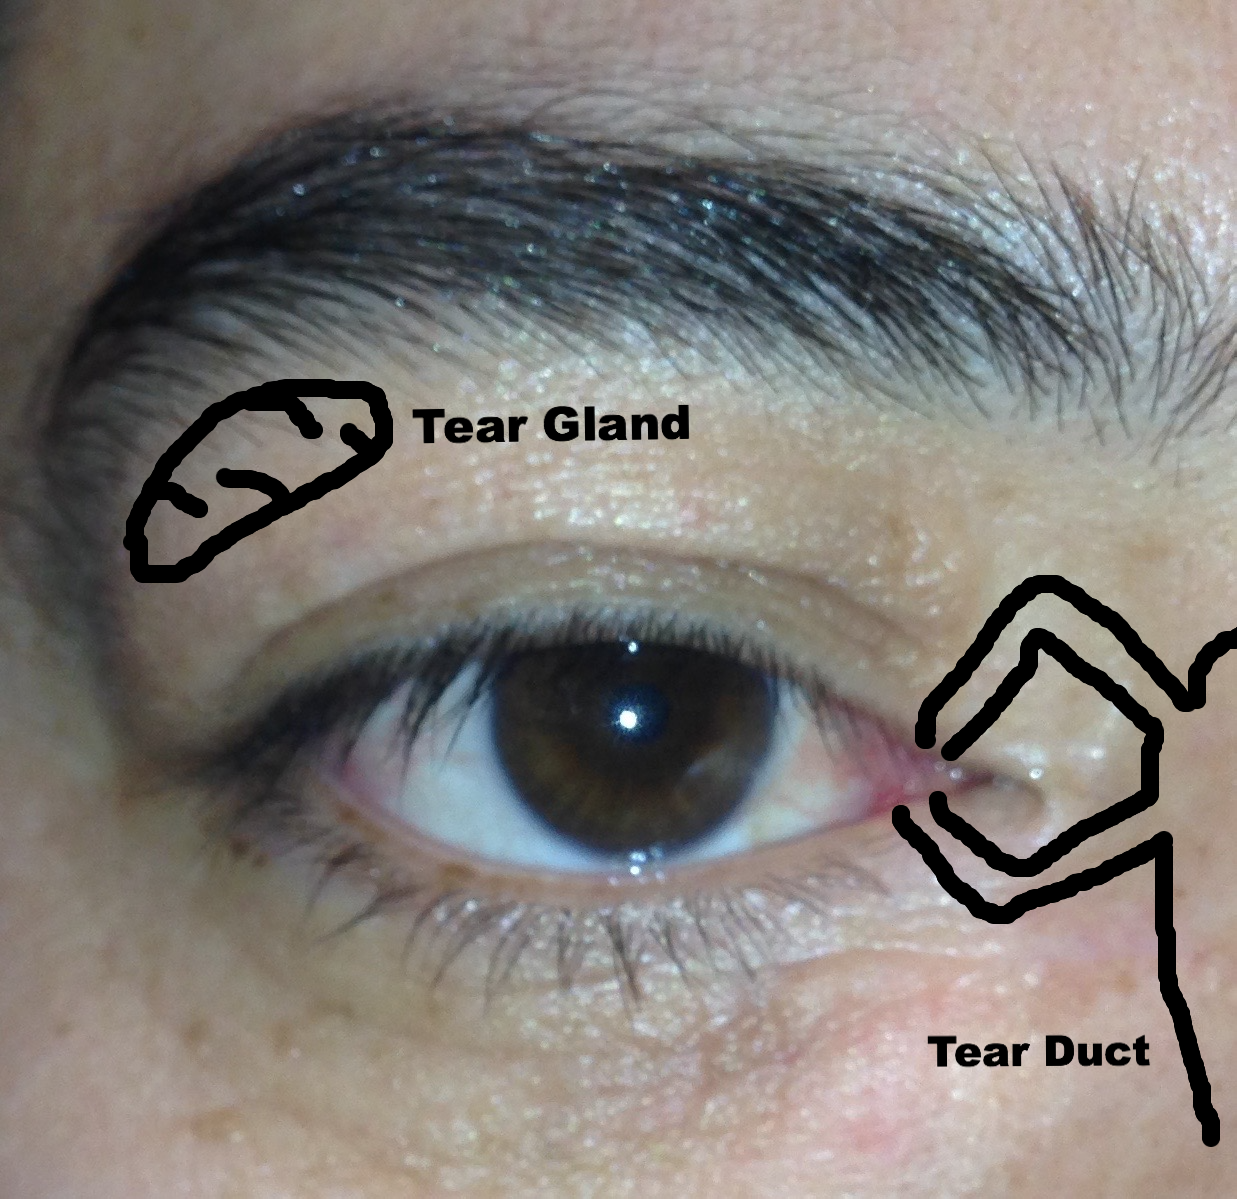 Denver Eyelid Specialist: Do I Have A Blocked Tear Duct?